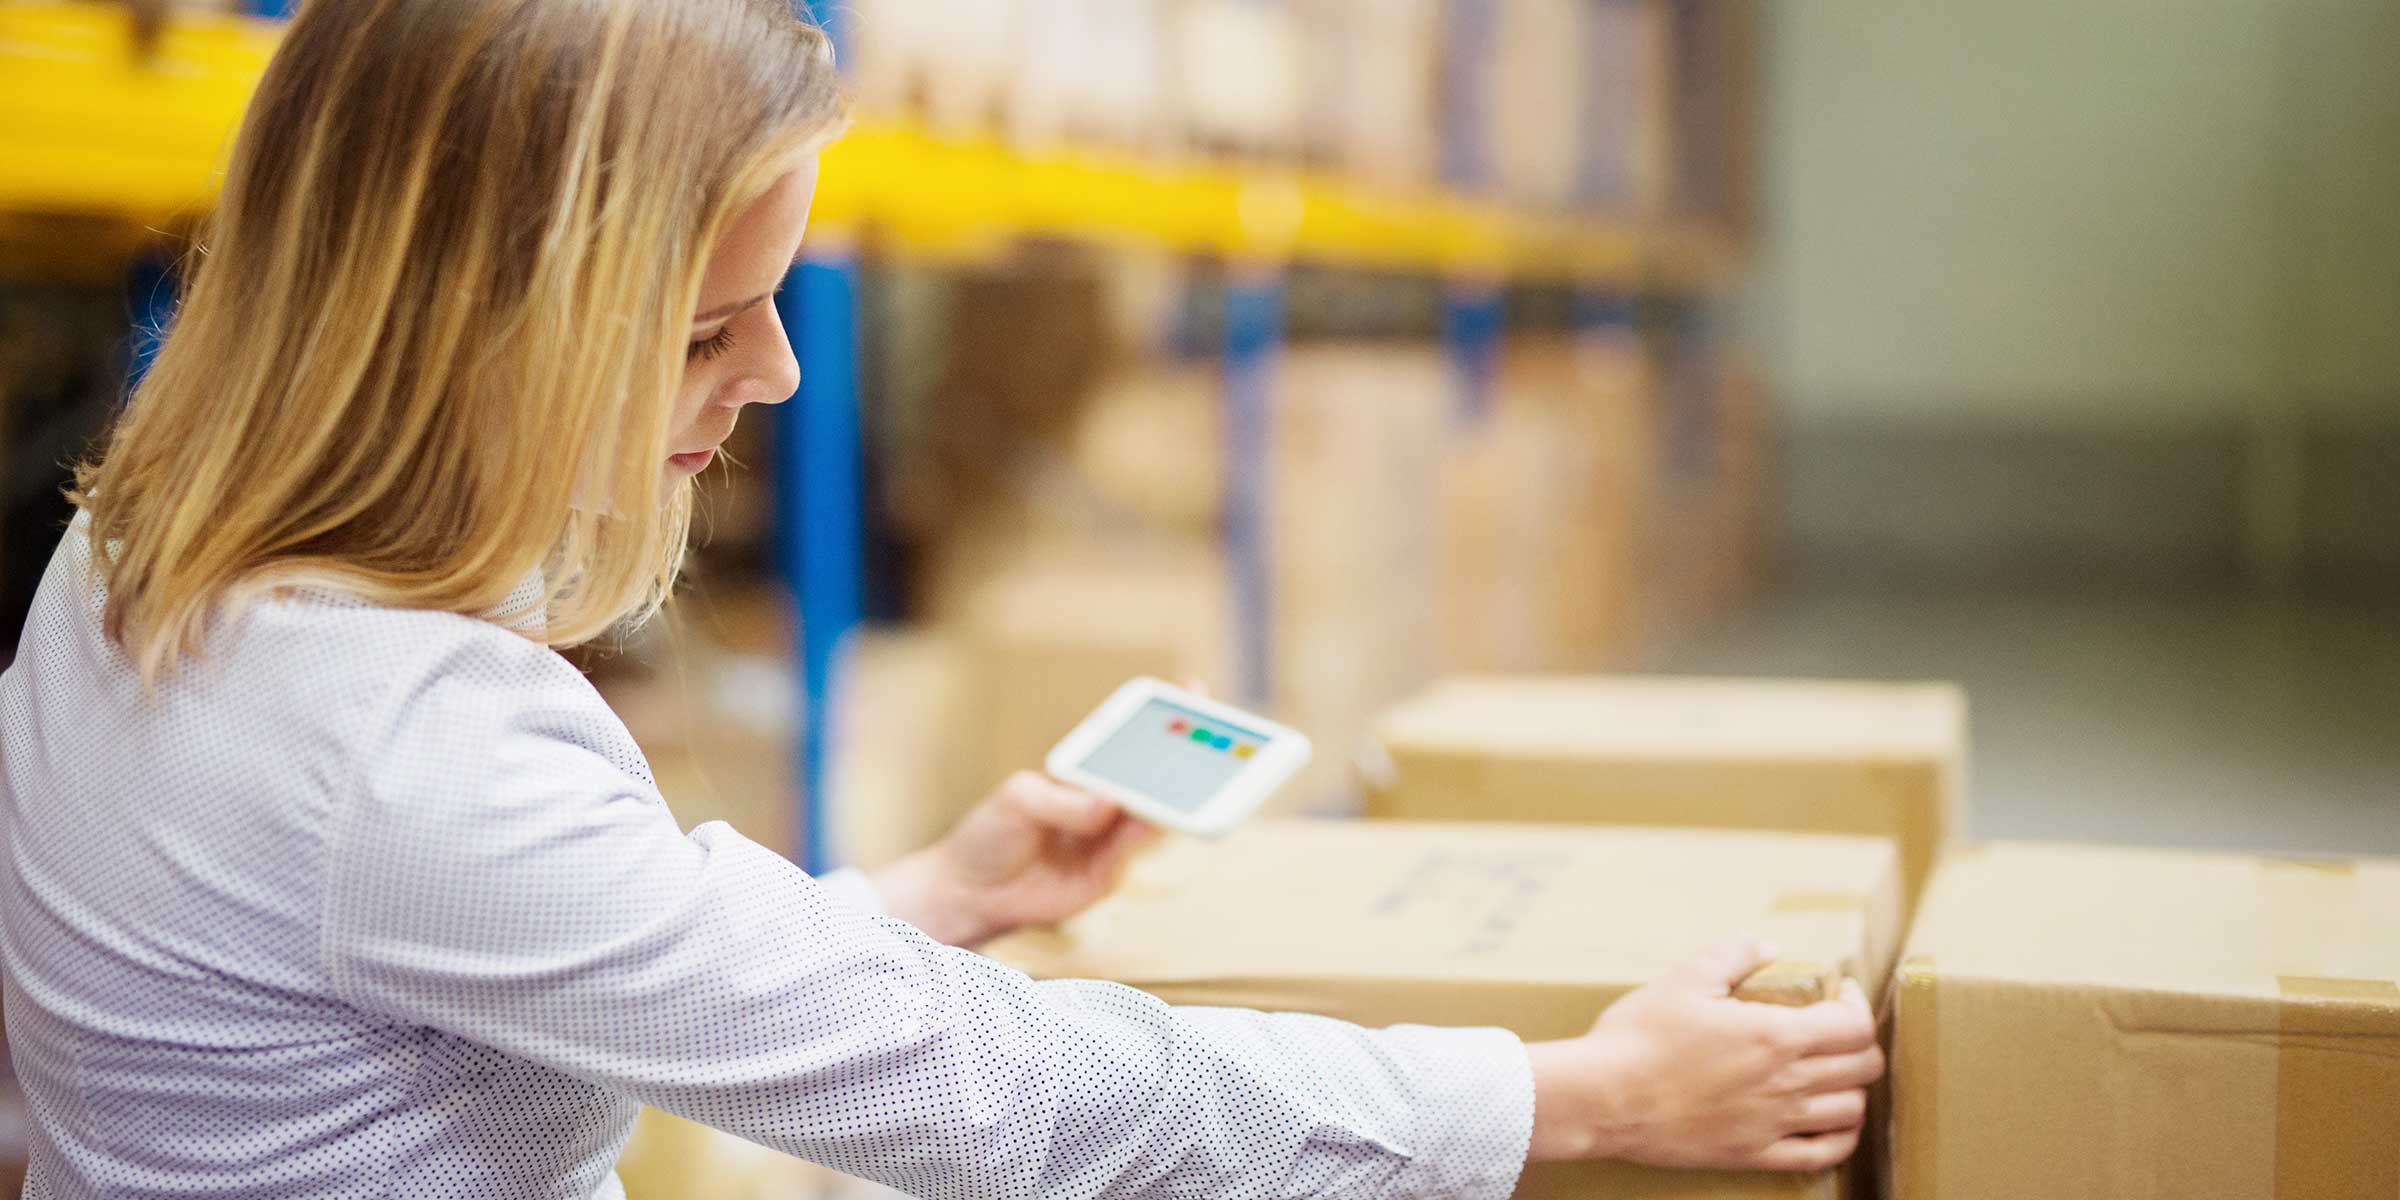 Everything you need to know about 3PL and multi-warehousing